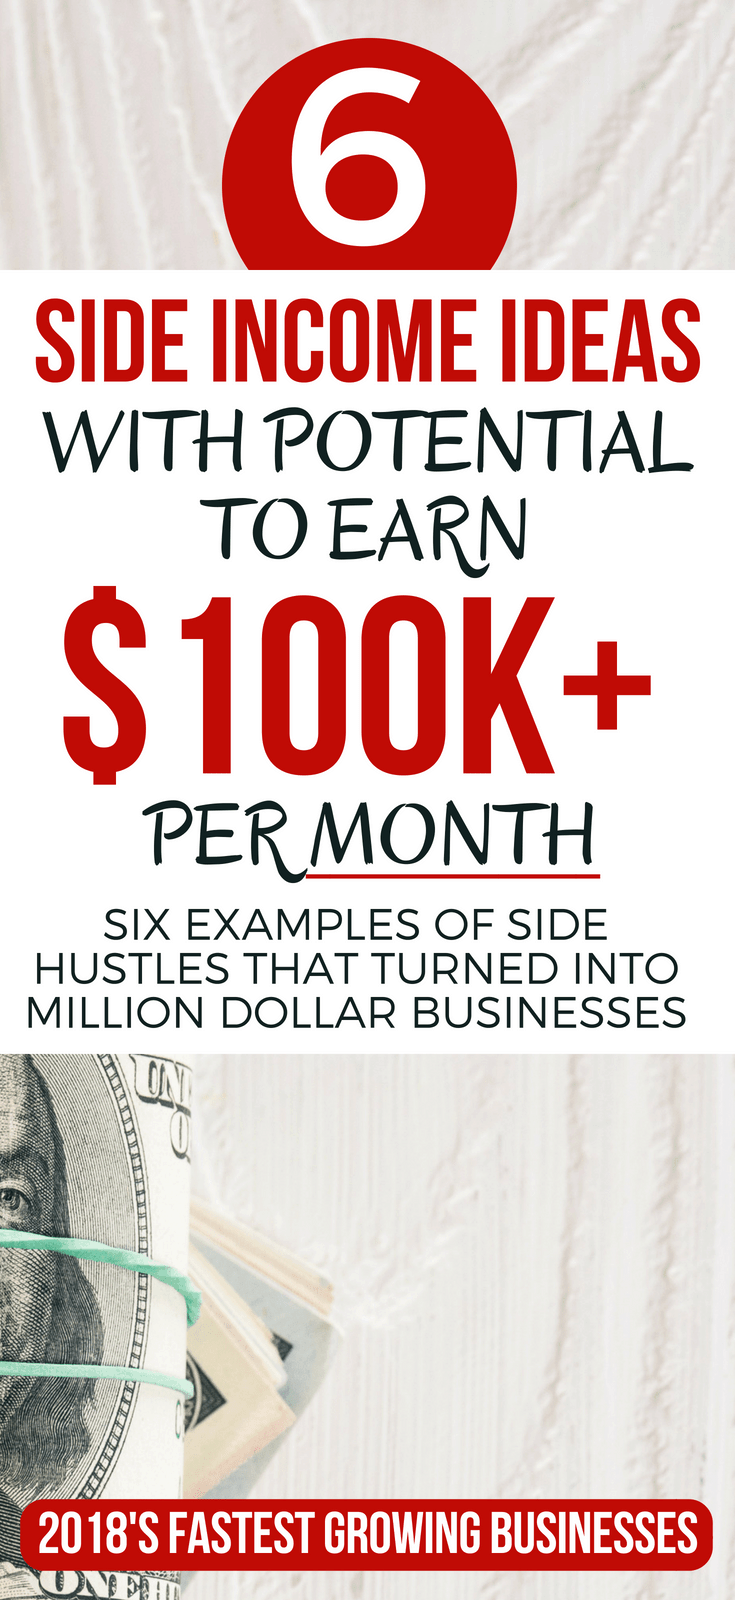 6 Real Examples of Million Dollar Home Based Businesses You Can Launch For CheapThe amount of million dollar, one-person businesses is growing. Check out these examples.entrepreneurship ideas | entrepreneurship ideas startups | business ideas start up | home based business opportunities#workfromhome #business #makemoneyonline #sidehustles